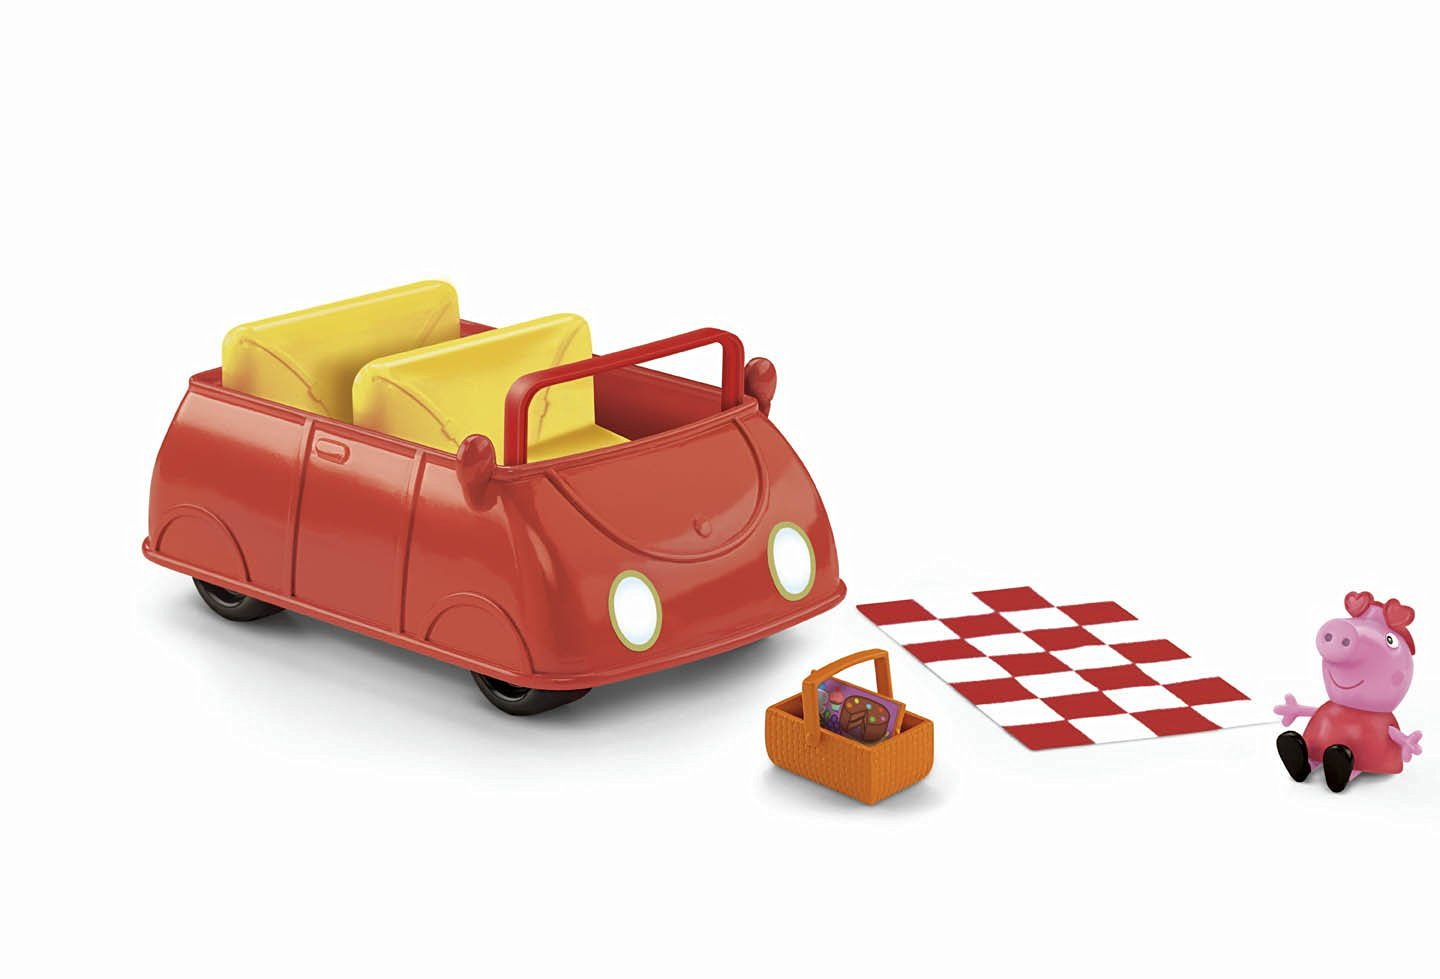 Fisher-Price Peppa Pig: Peppa's Picnic Adventure Car